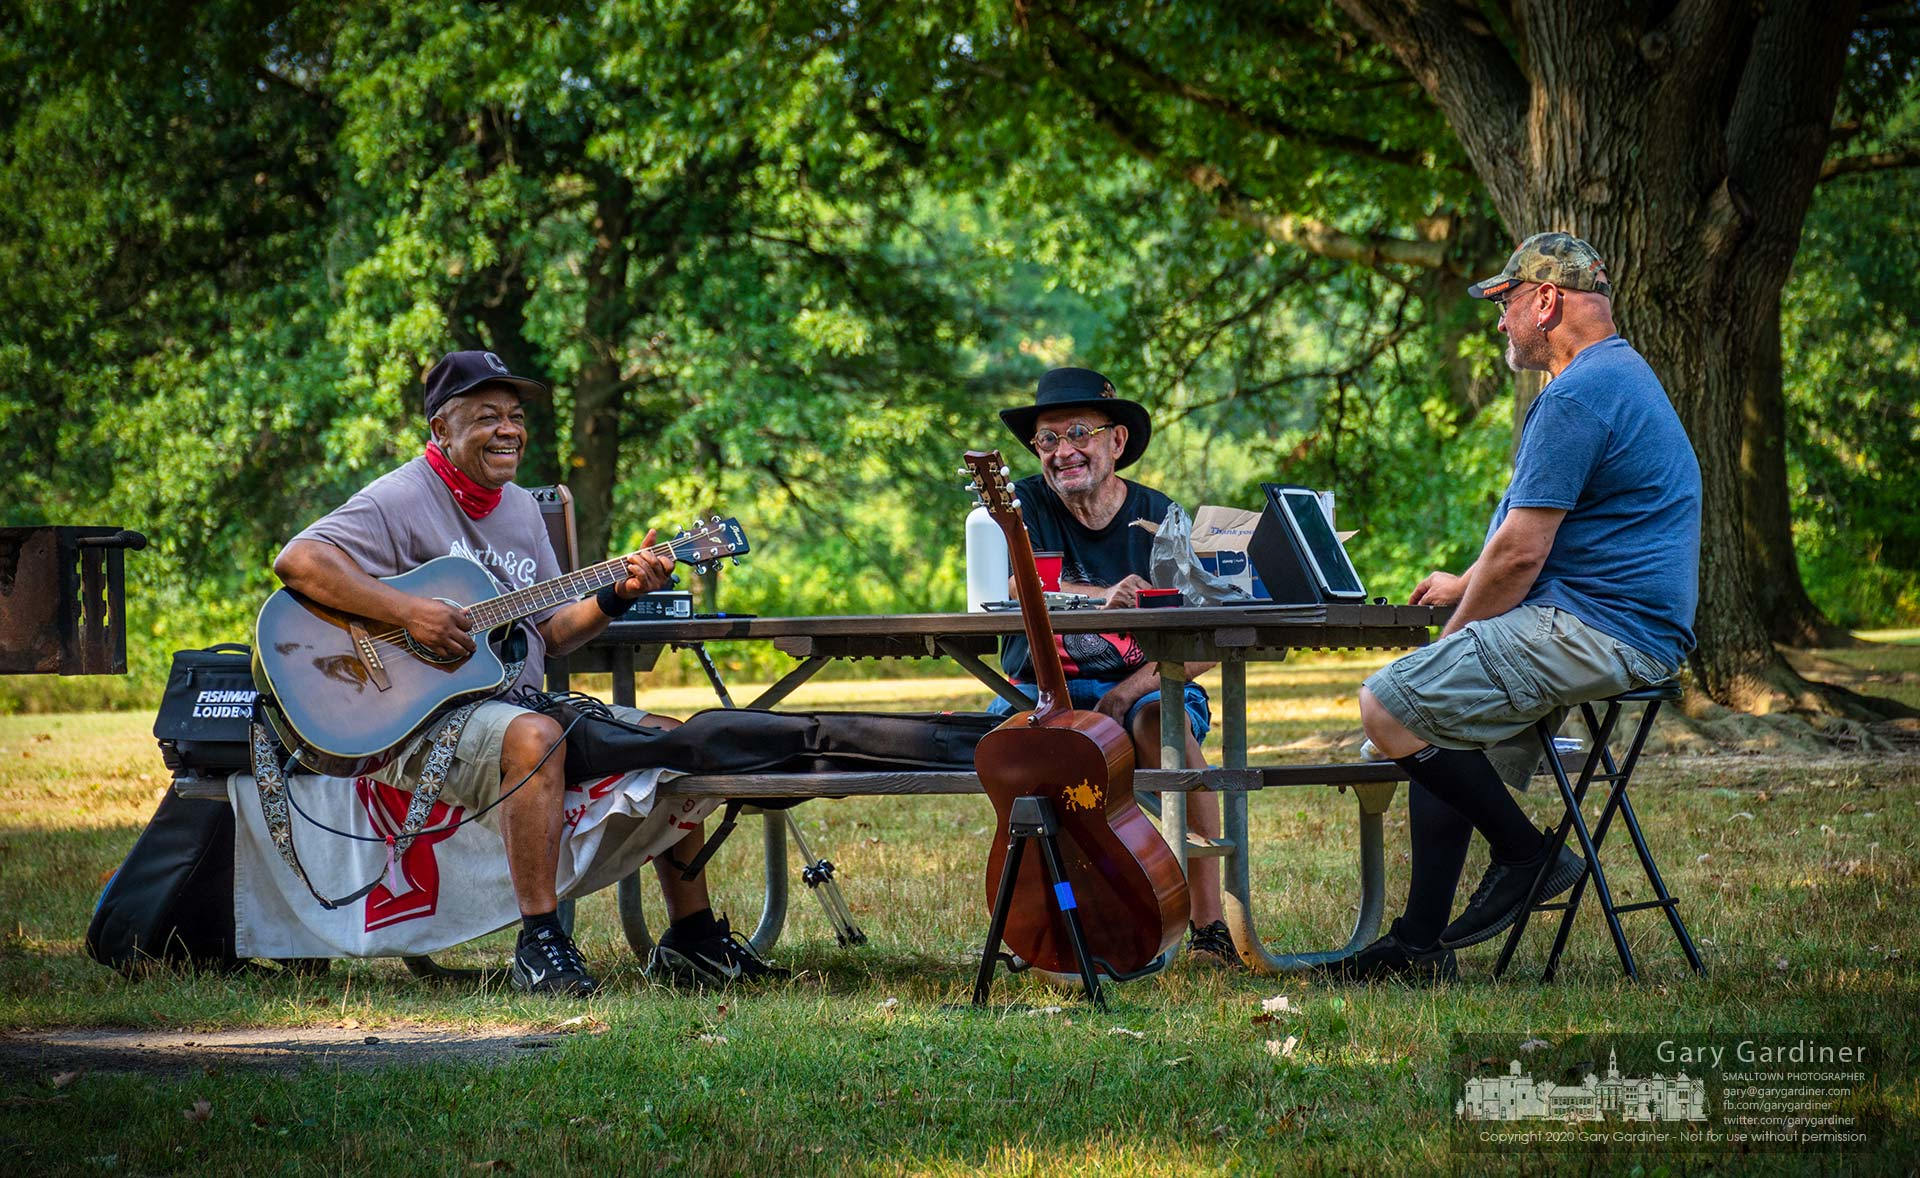 A trio of musicians gather at Sharon Woods Wednesday morning to share songs, stories, and friendship in the shade of oak trees before the day becomes too hot to enjoy. My Final Photo for Aug. 26, 2020.